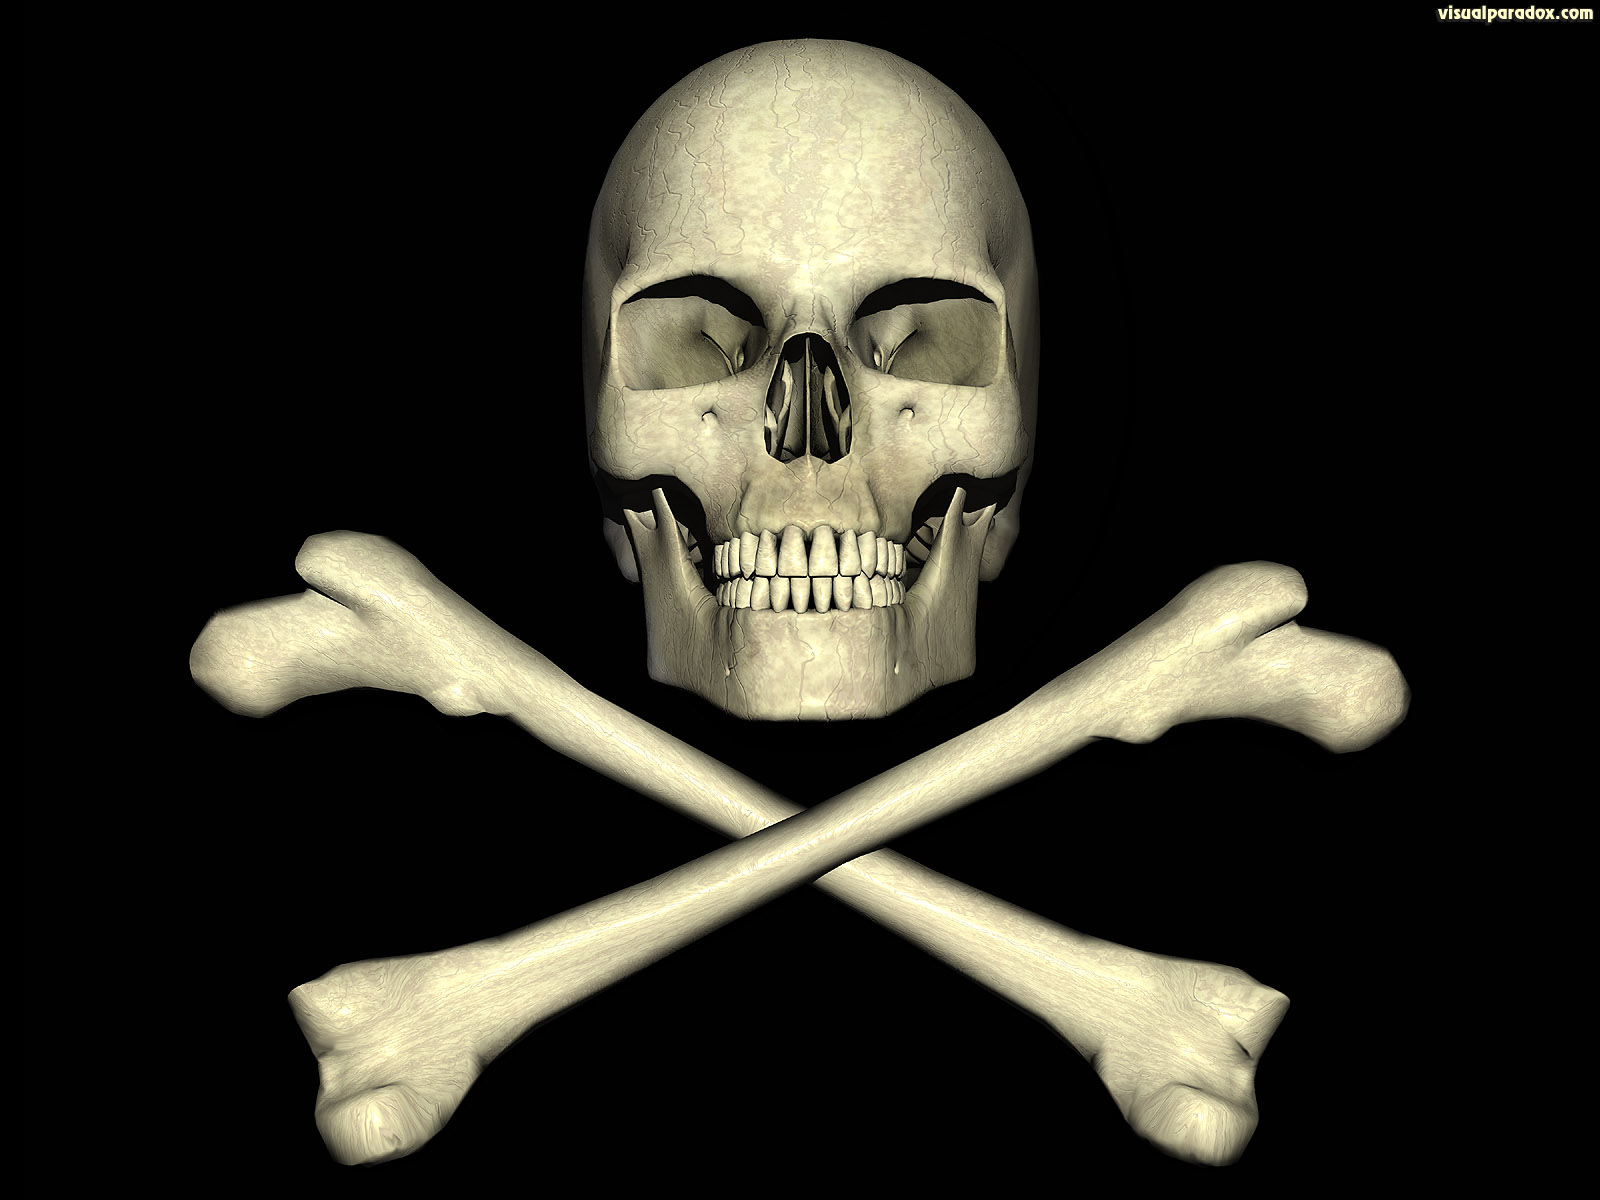 adventure, anatomy, art, black, bone, bones, buccaneer, caution, cracker, creepy, crosbones, cross, crossbones, crossed, curse, danger, dangerous, dark, dead, deadly, death, design, die, evil, face, flag, grim, grunge, hacker, halloween, hazardous, head, horror, human, icon, isolated, jam, jaw, jolly, medical, old, pattern, piracy, pirate, pirates, poison, privateer, realistic, reaper, roger, sign, skeleton, skull, spooky, symbol, tattoo, teeth, toxic, vintage, warning, white, 3d, wallpaper